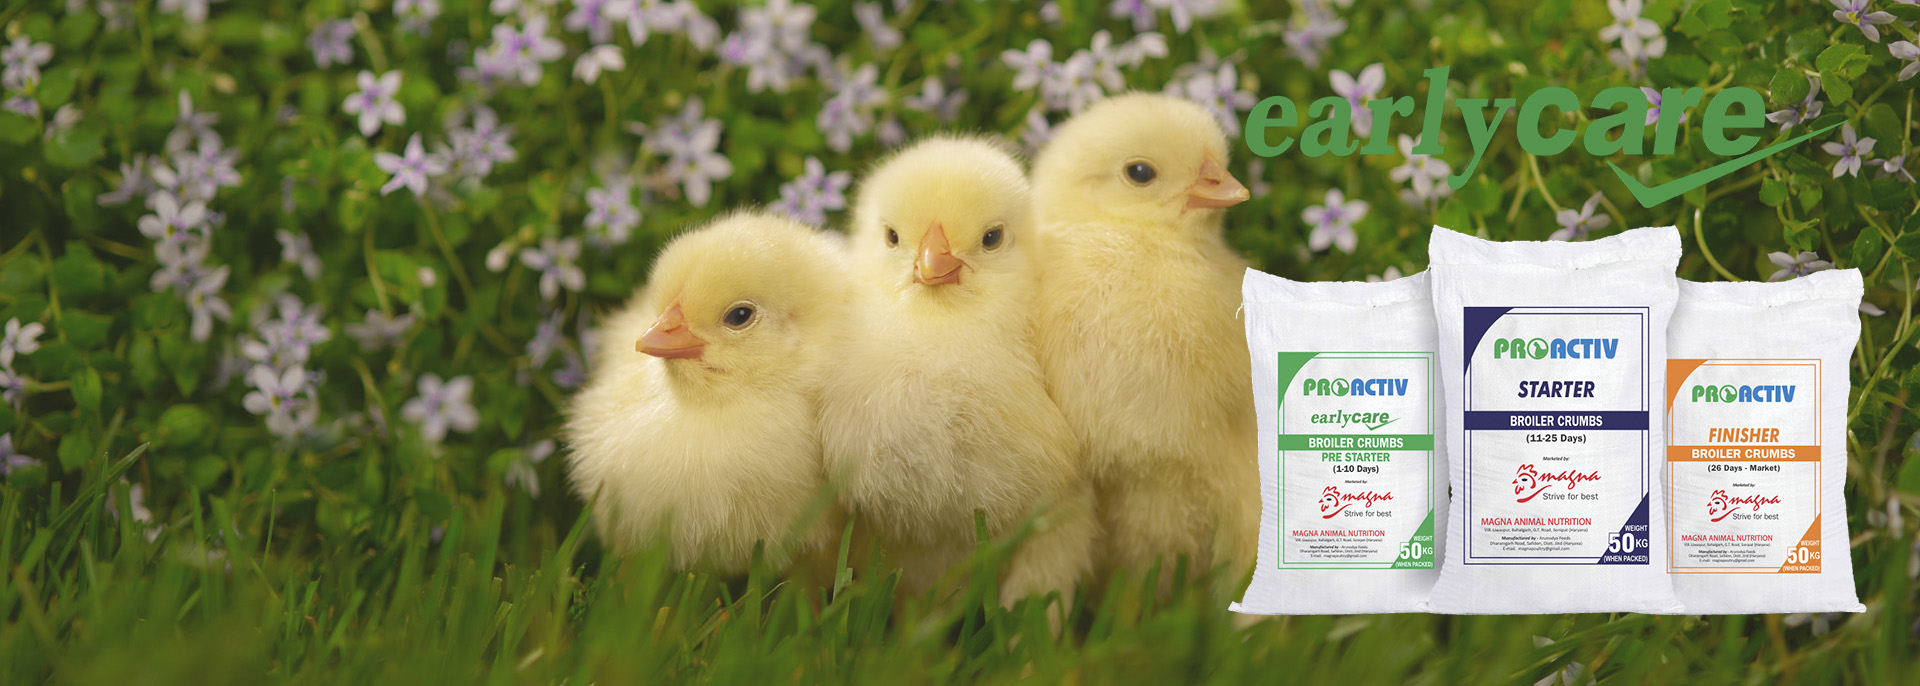 Proactiv Broiler Feeds